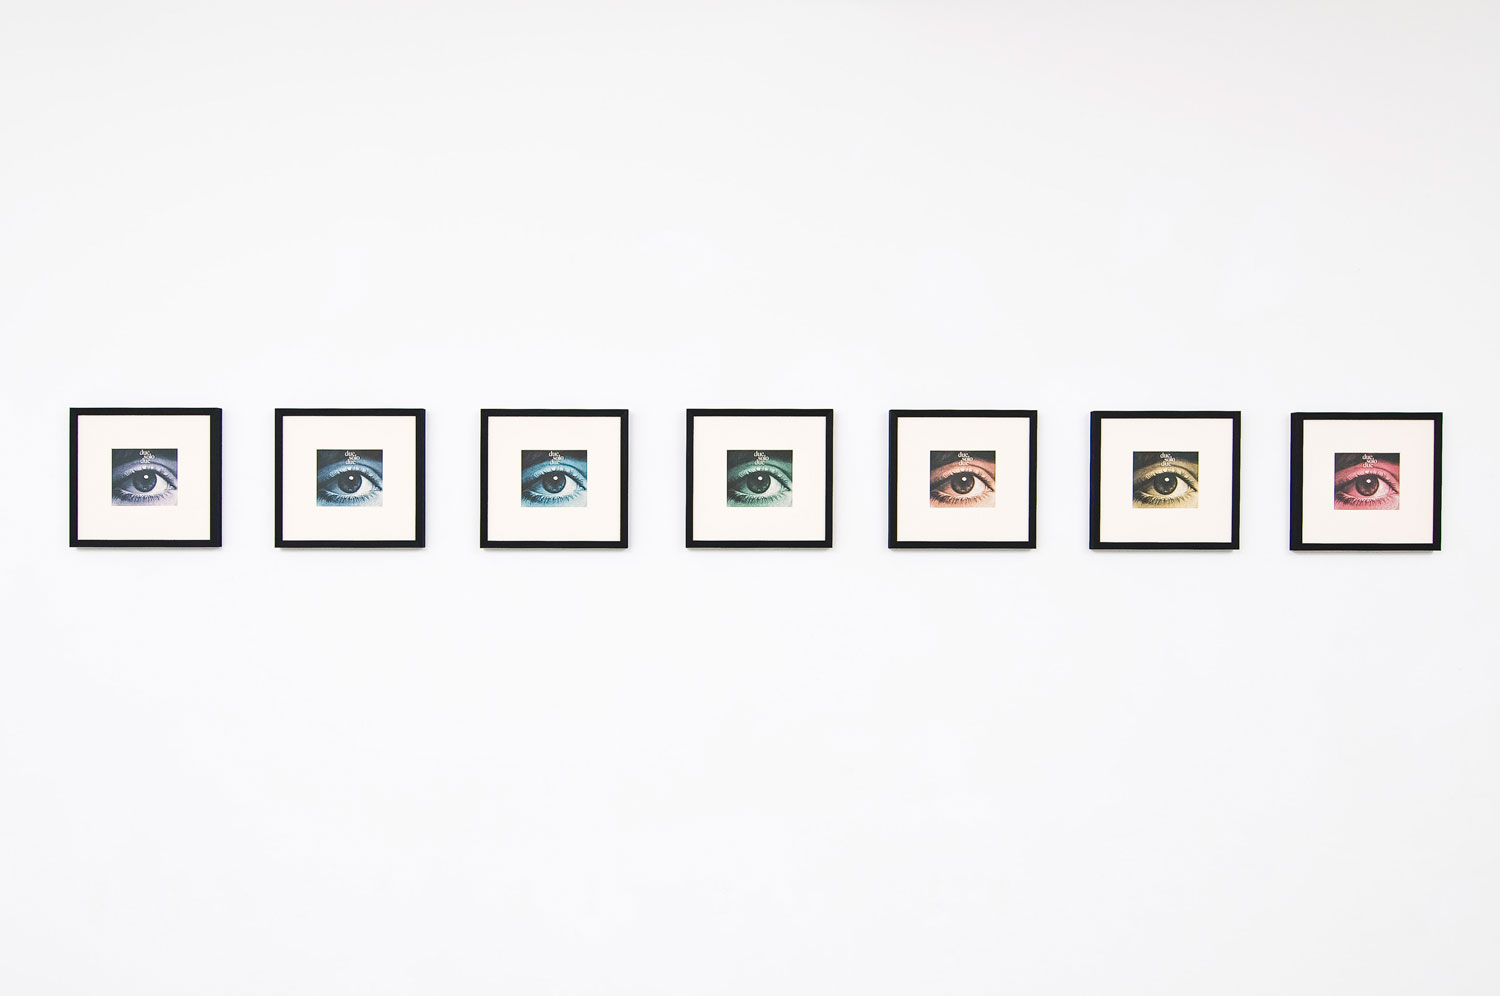 Alessandro Piangiamore | due solo due, 2011, print on paper, 7 elements, cm 30 x 30 each